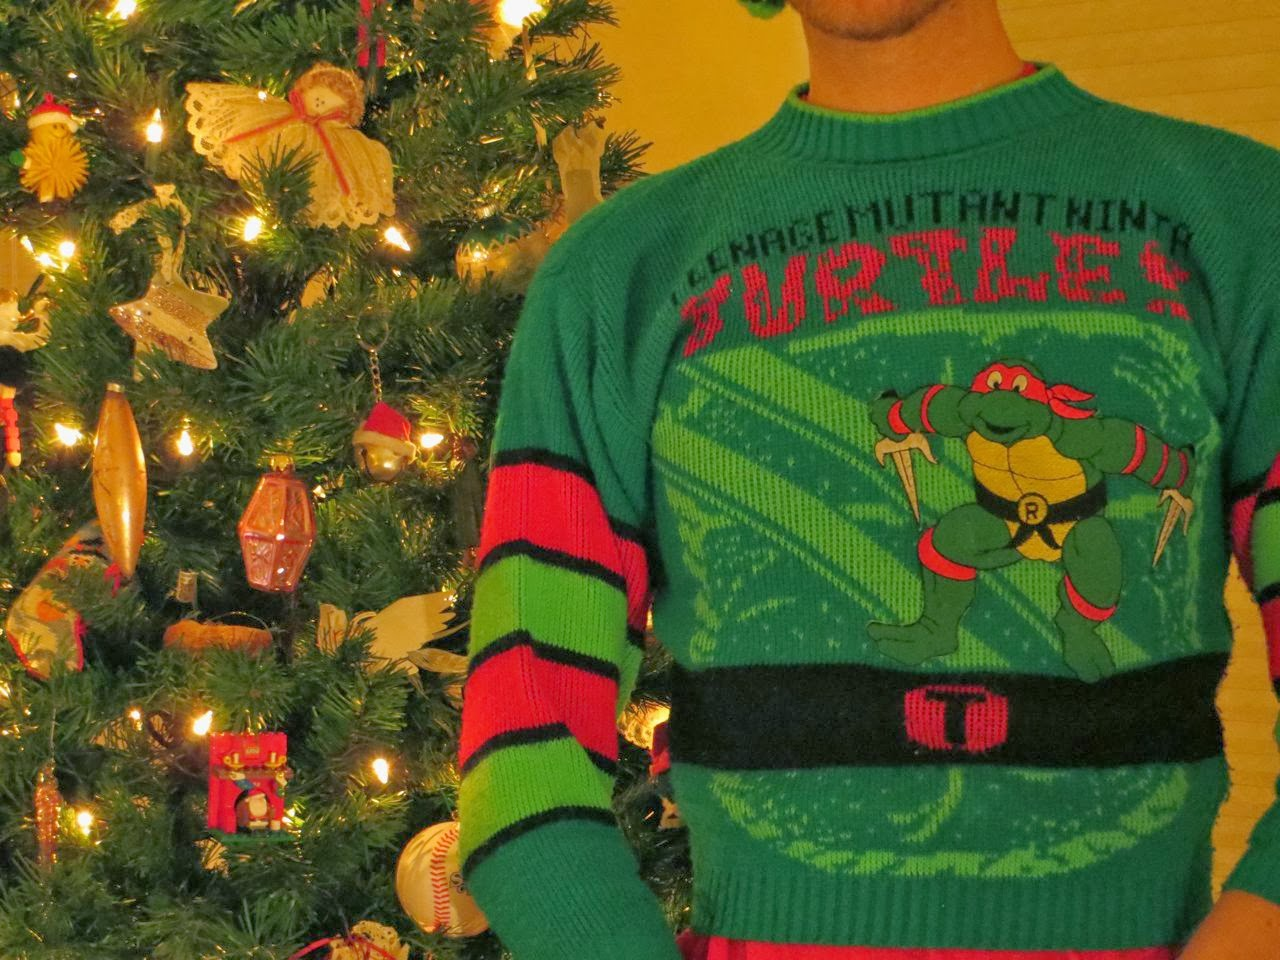 The Sewer Den: 24 Days of Turtle: Day 4 (Ugly Christmas Sweater)